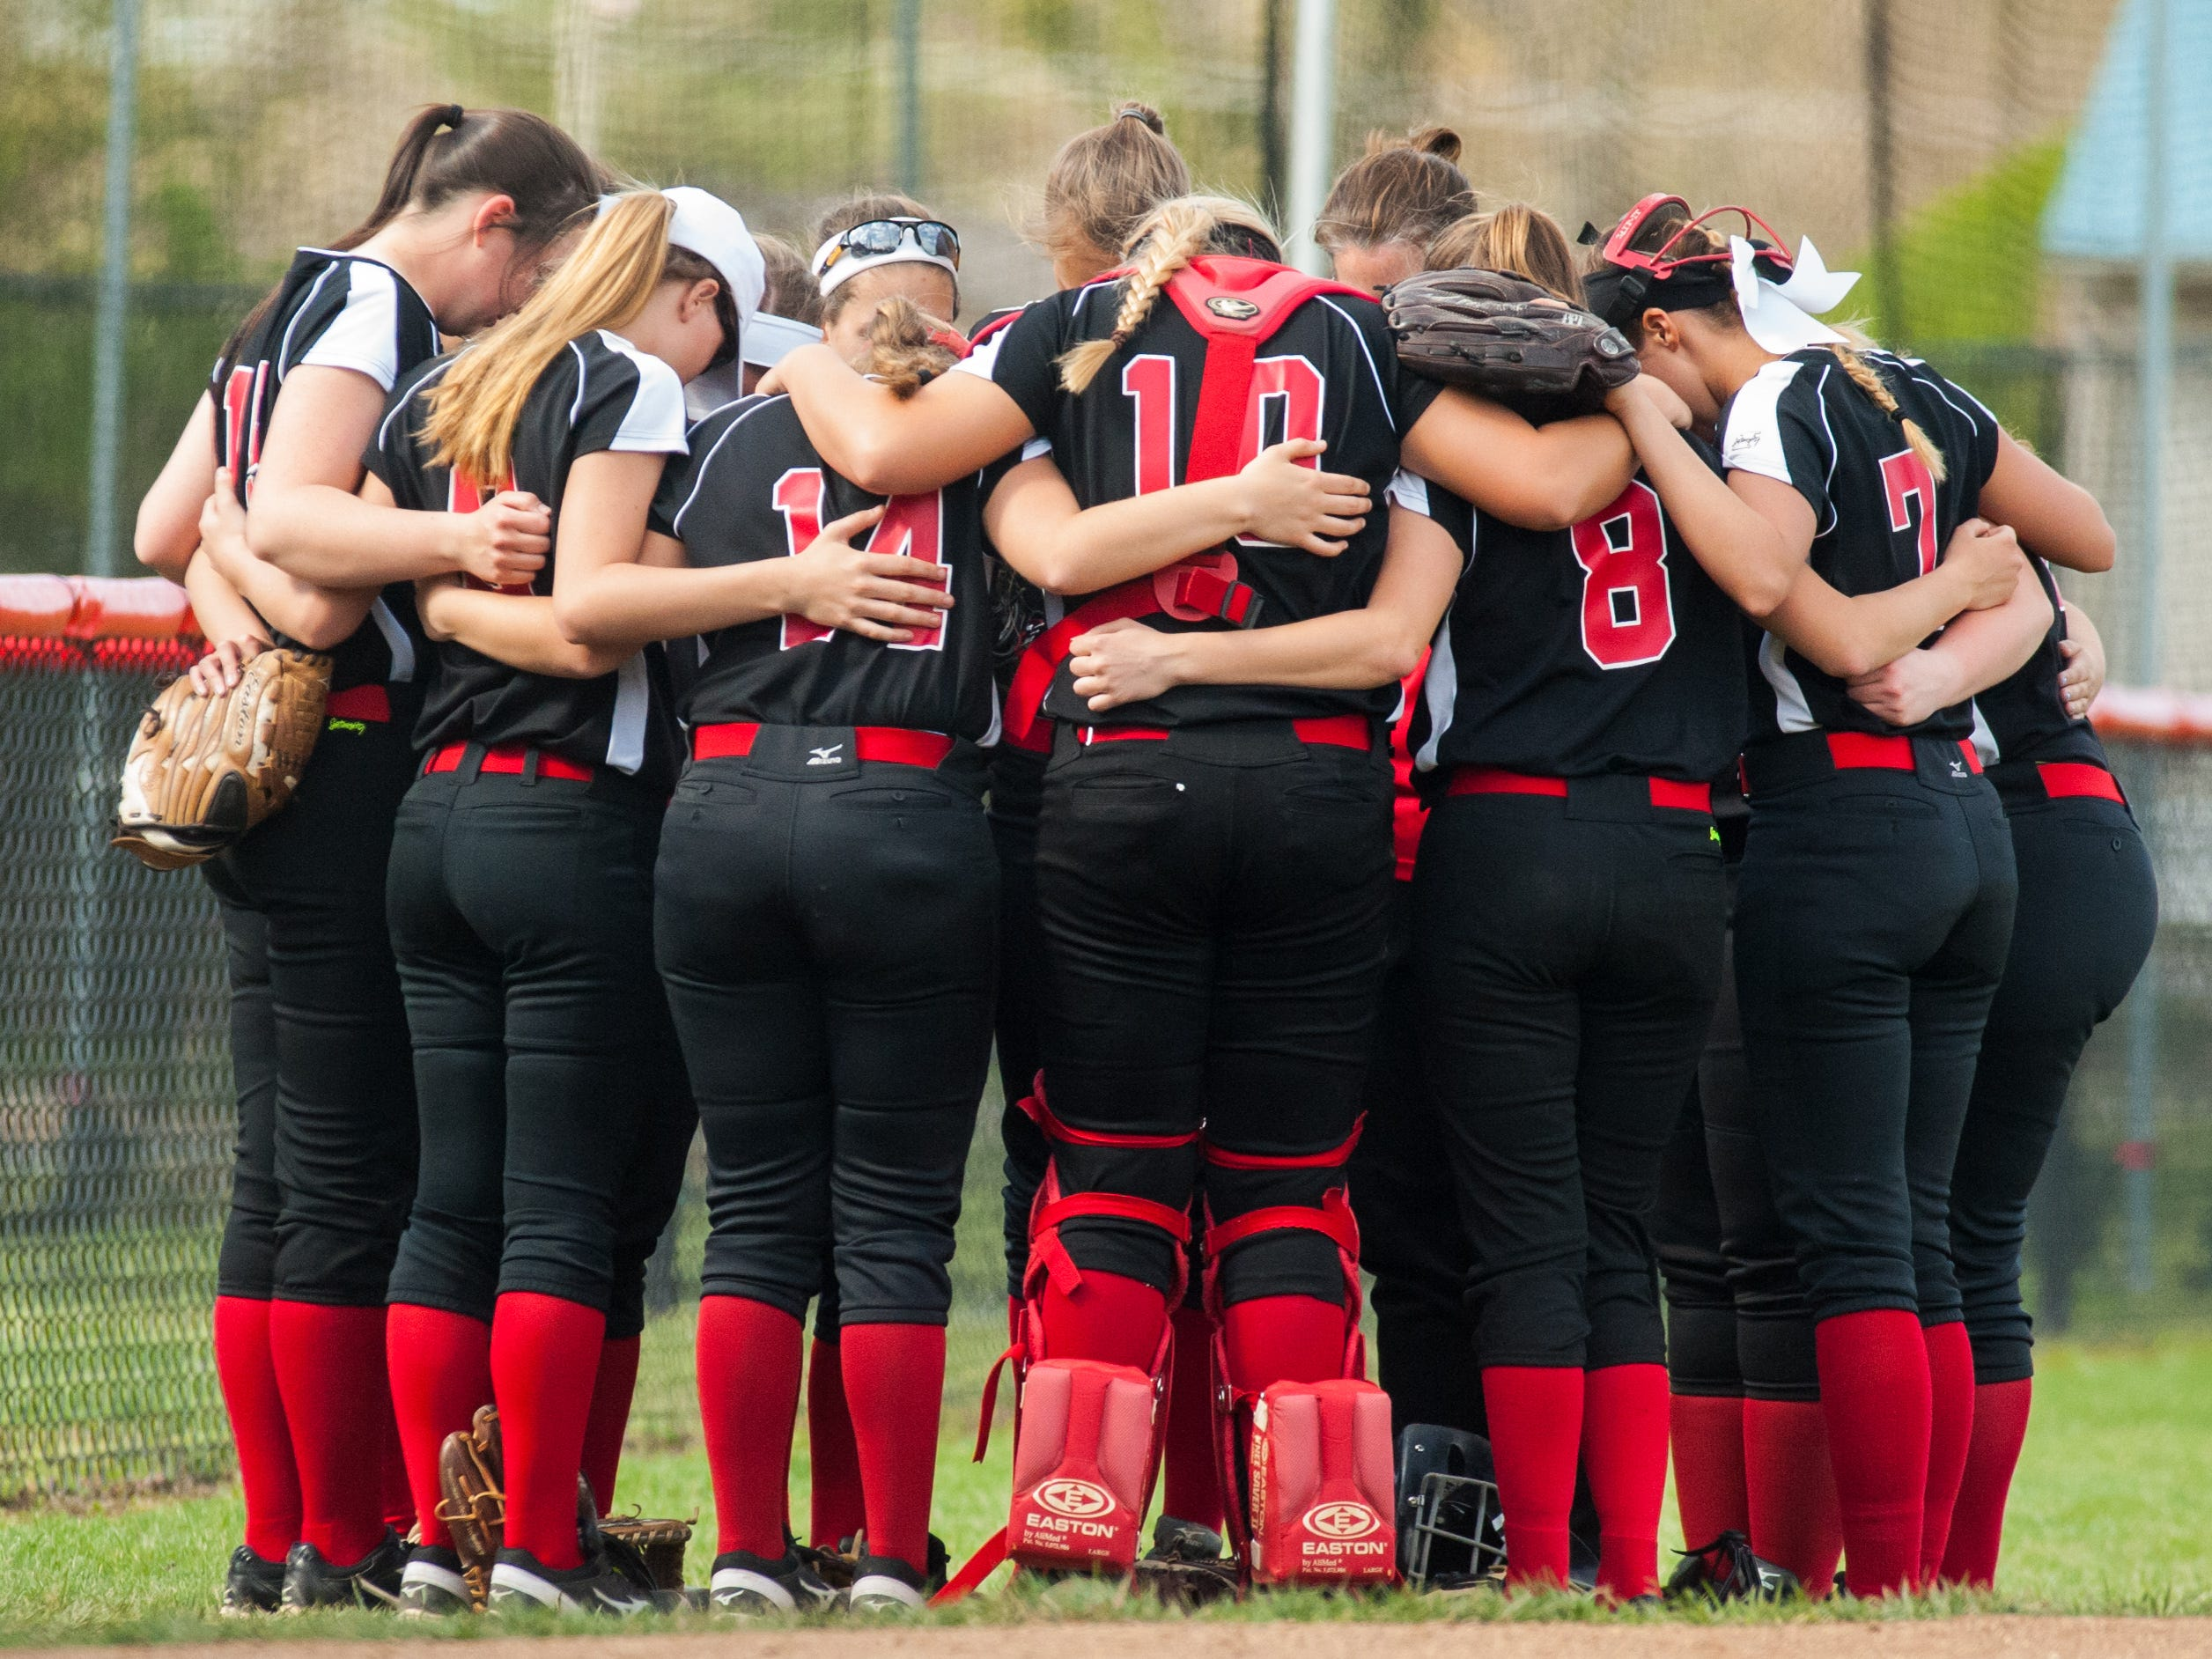 The James M. Bennett softball team prepares for a game against Parkside at James M Bennett High on Thursday afternoon.